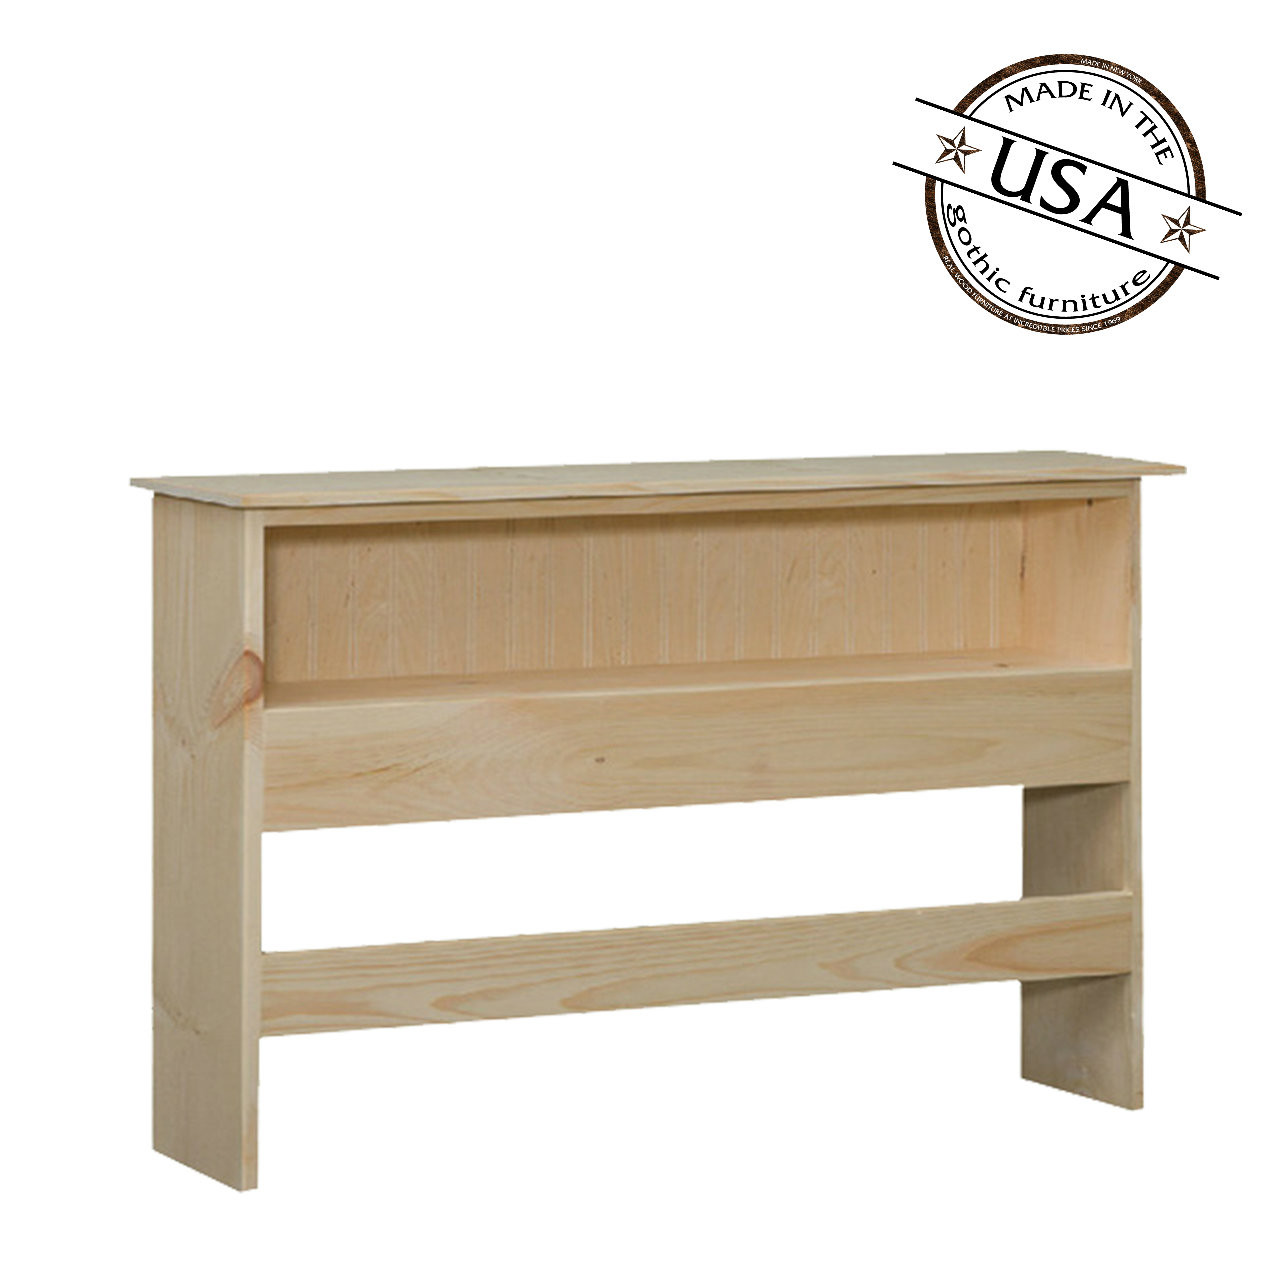 Queen Bookcase Headboard 48 High In Pine